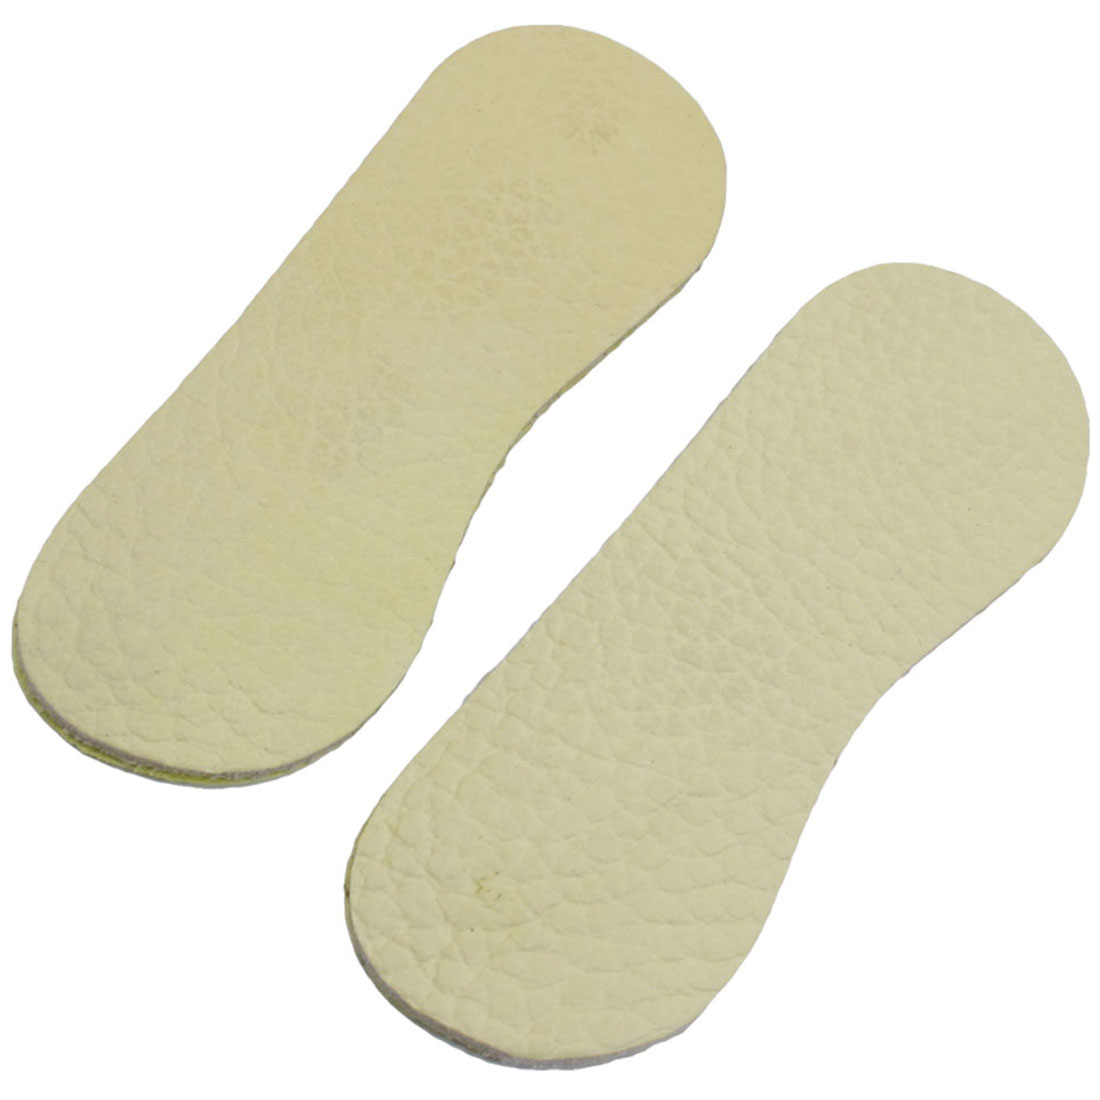 Pair Beige Faux Leather Back Pads Shoe Insoles for Women